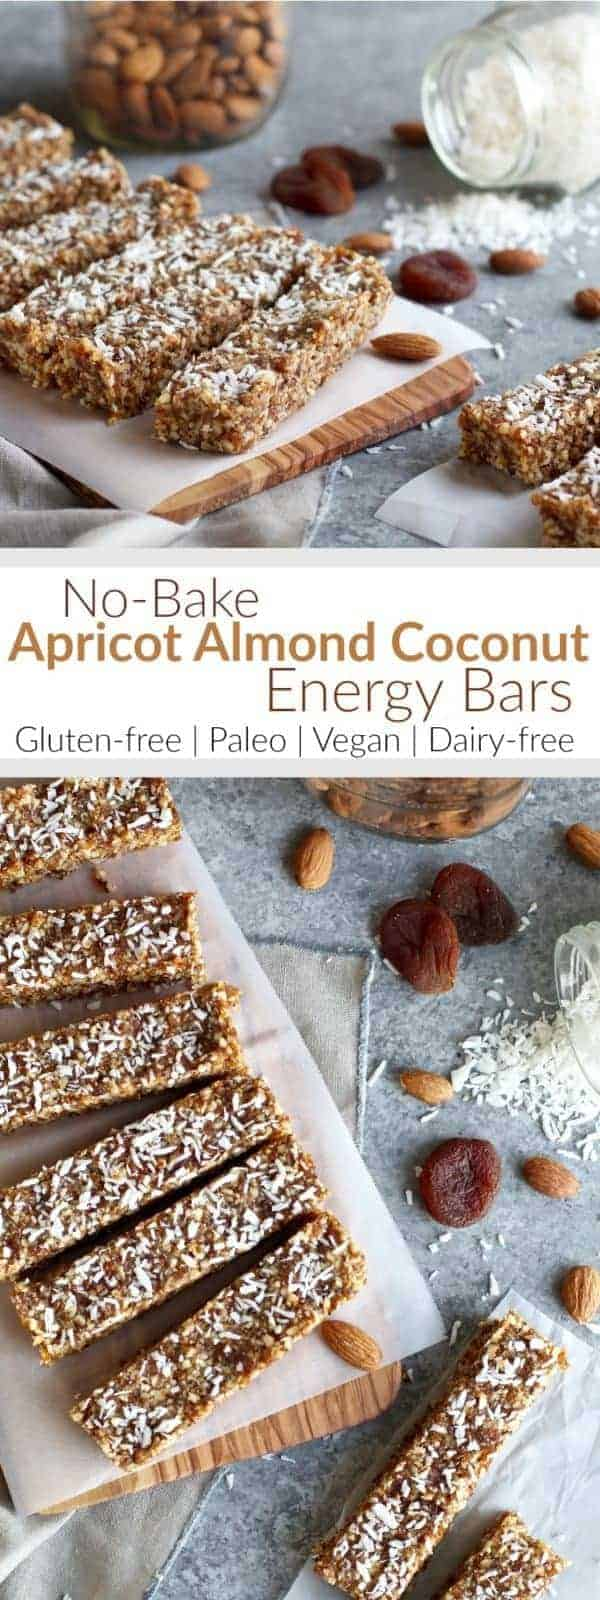 Pinterest image for Apricot Almond Coconut Energy Bars